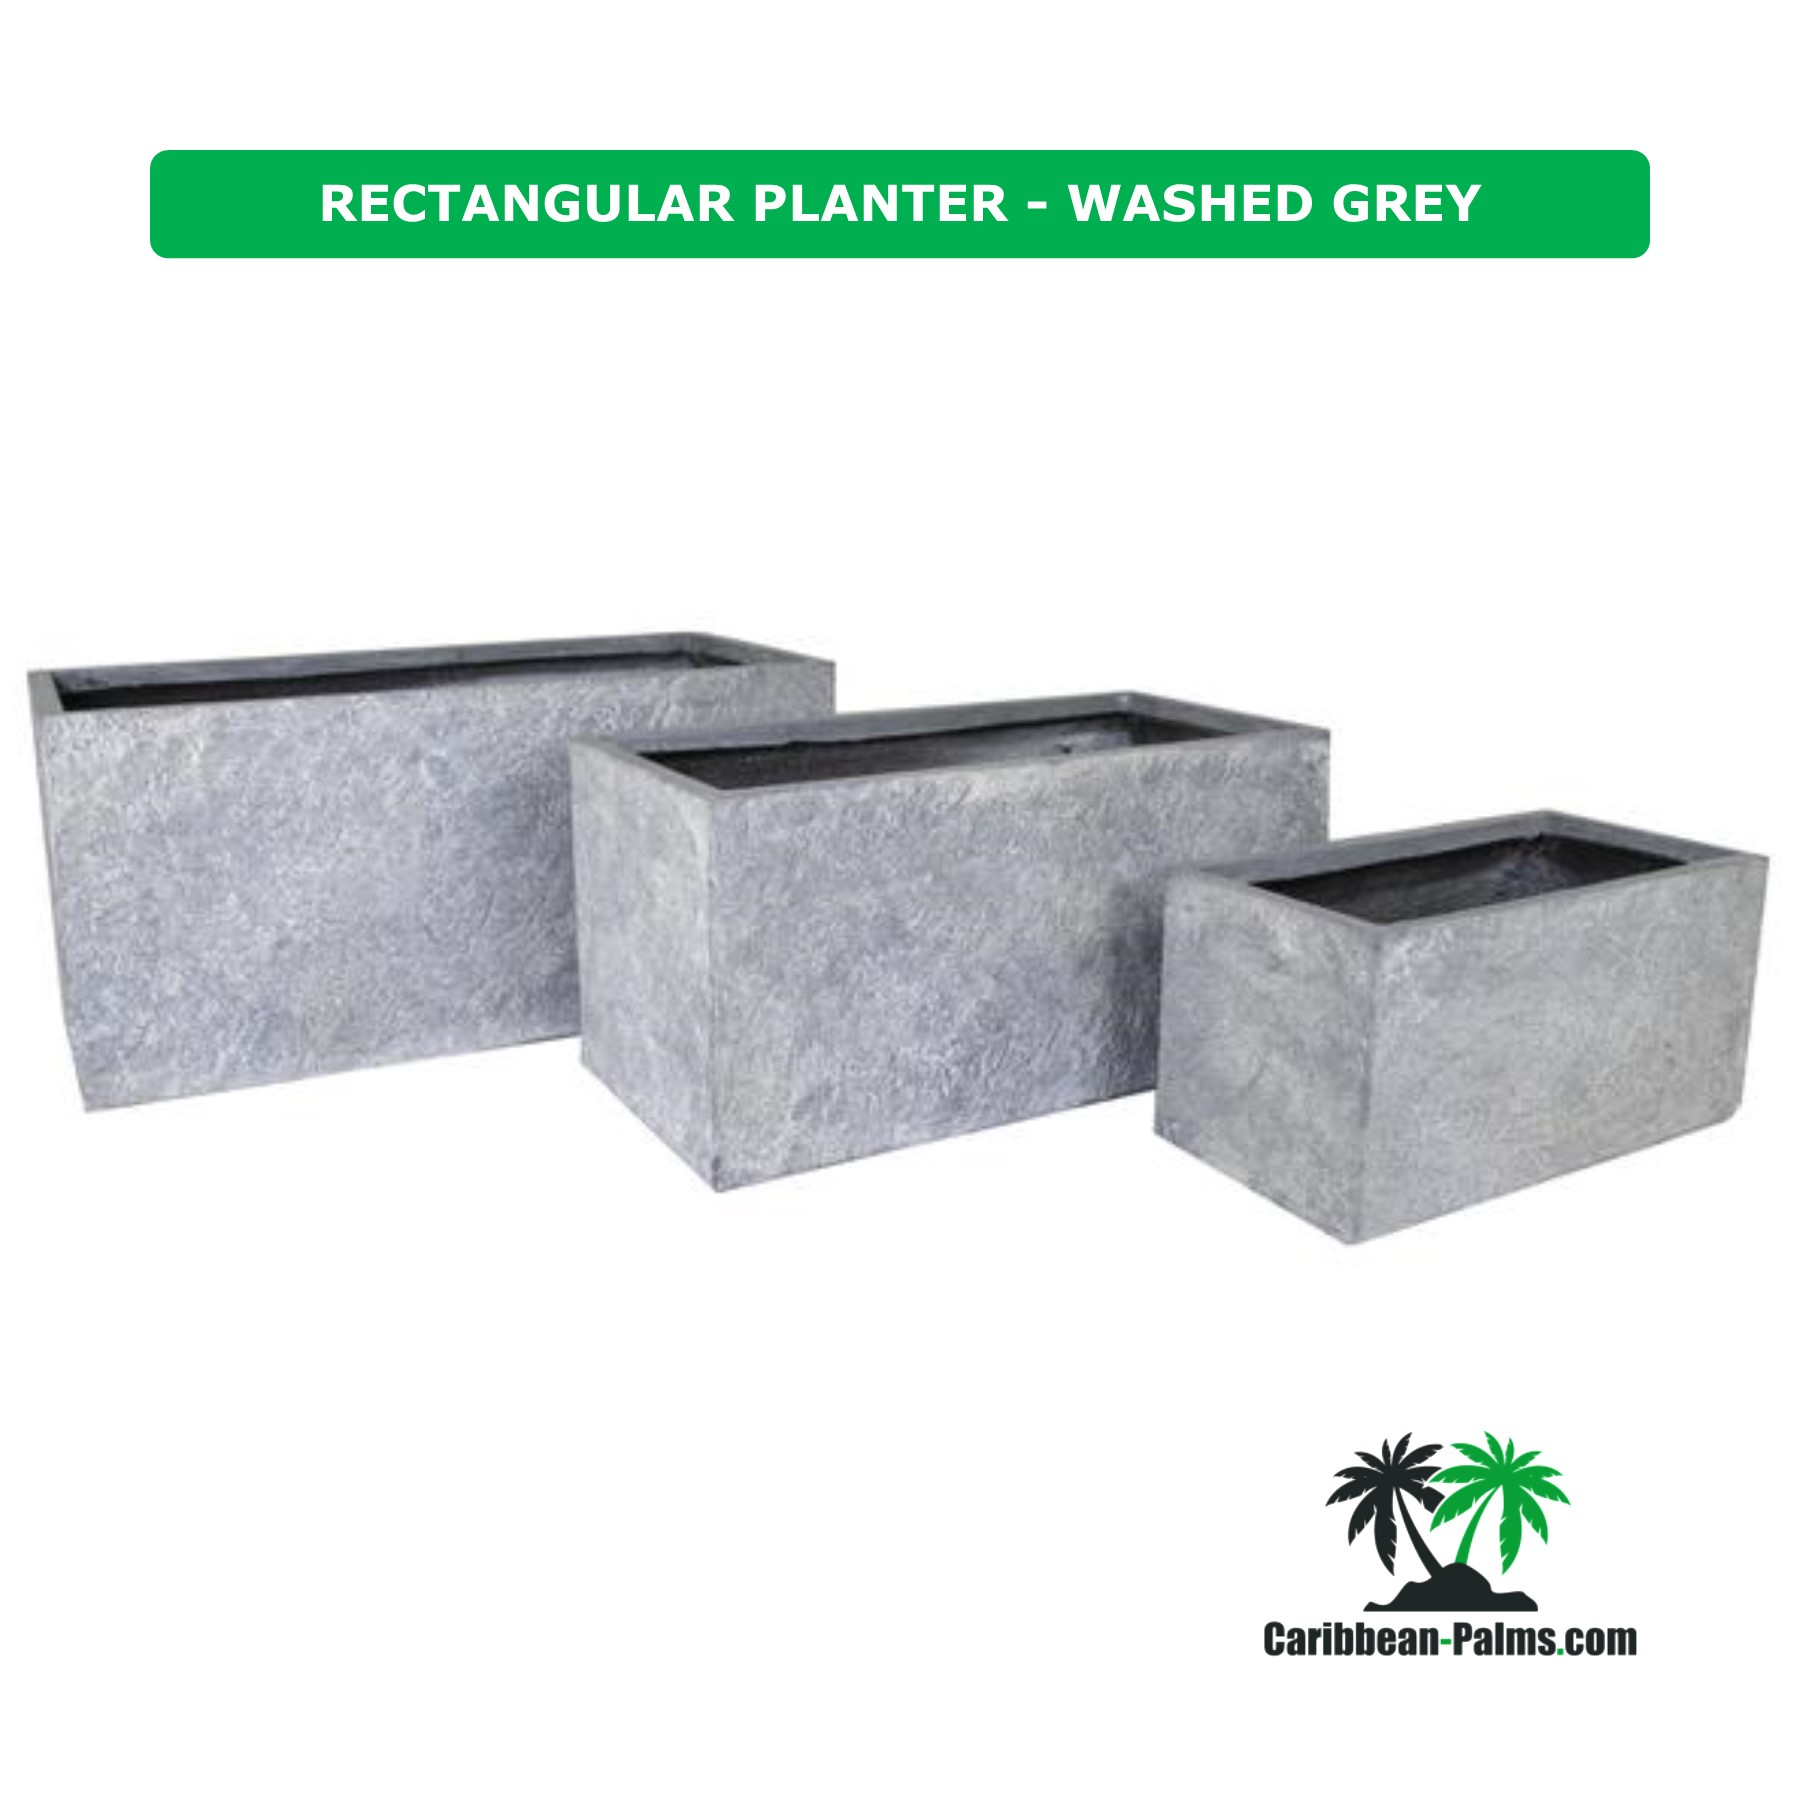 RECTANGULAR PLANTER WASHED GREY